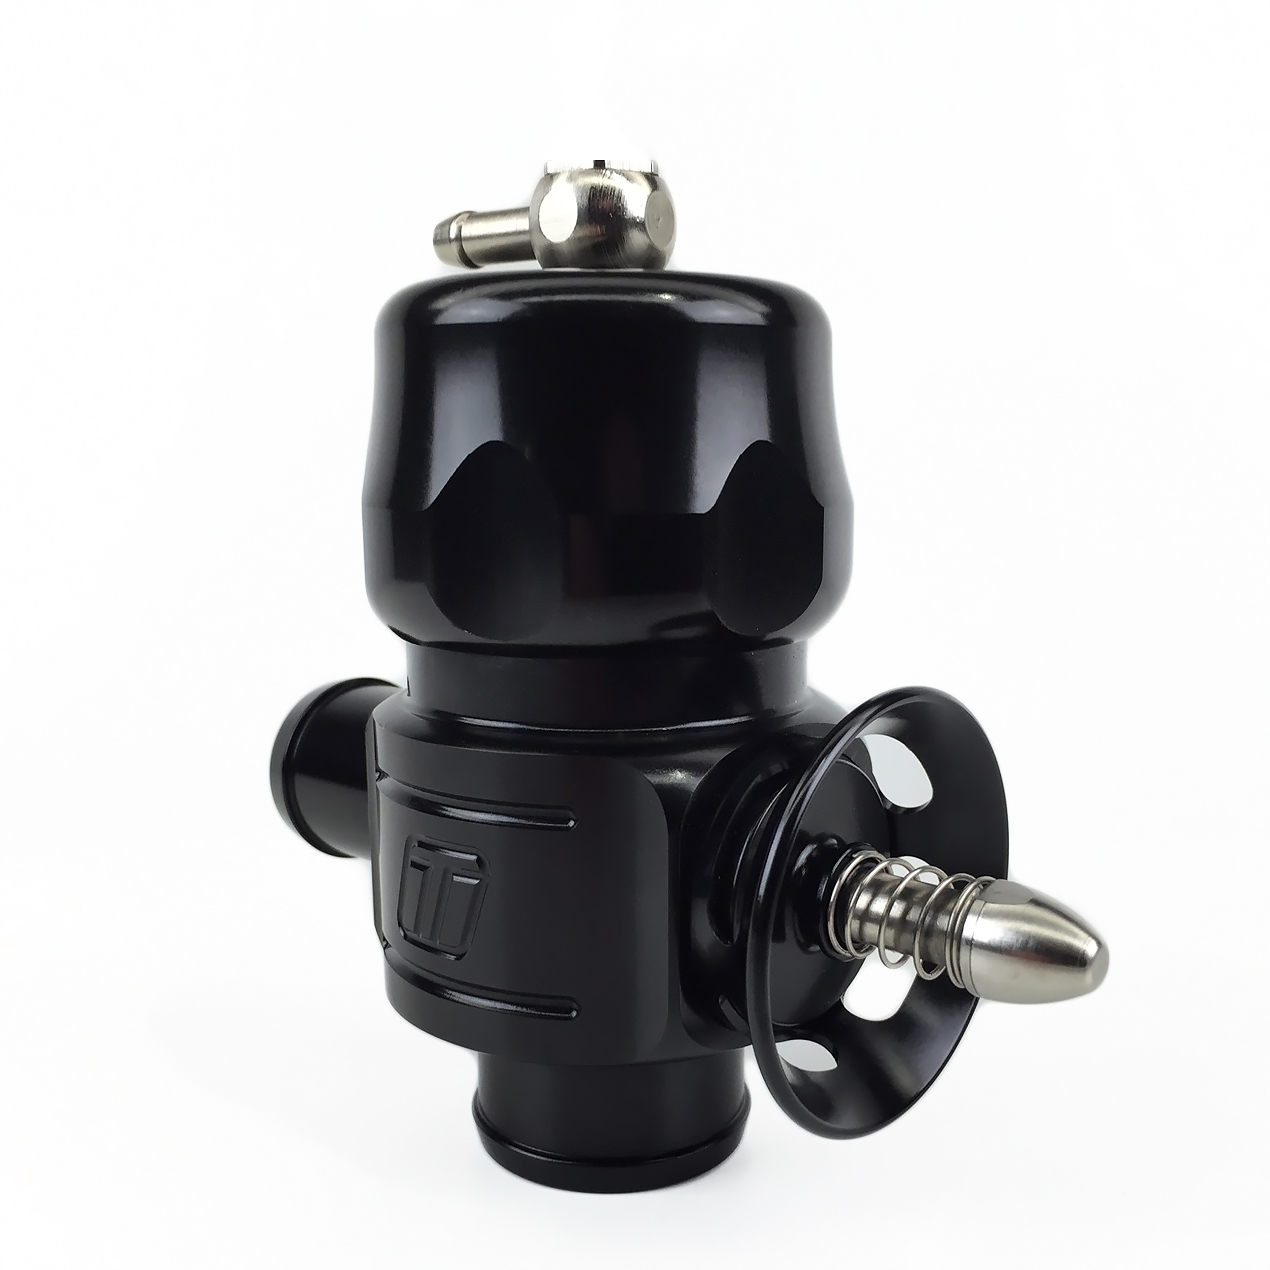 Turbosmart BOV Smart PortDual Port Subaru WRX 2015+ - Black